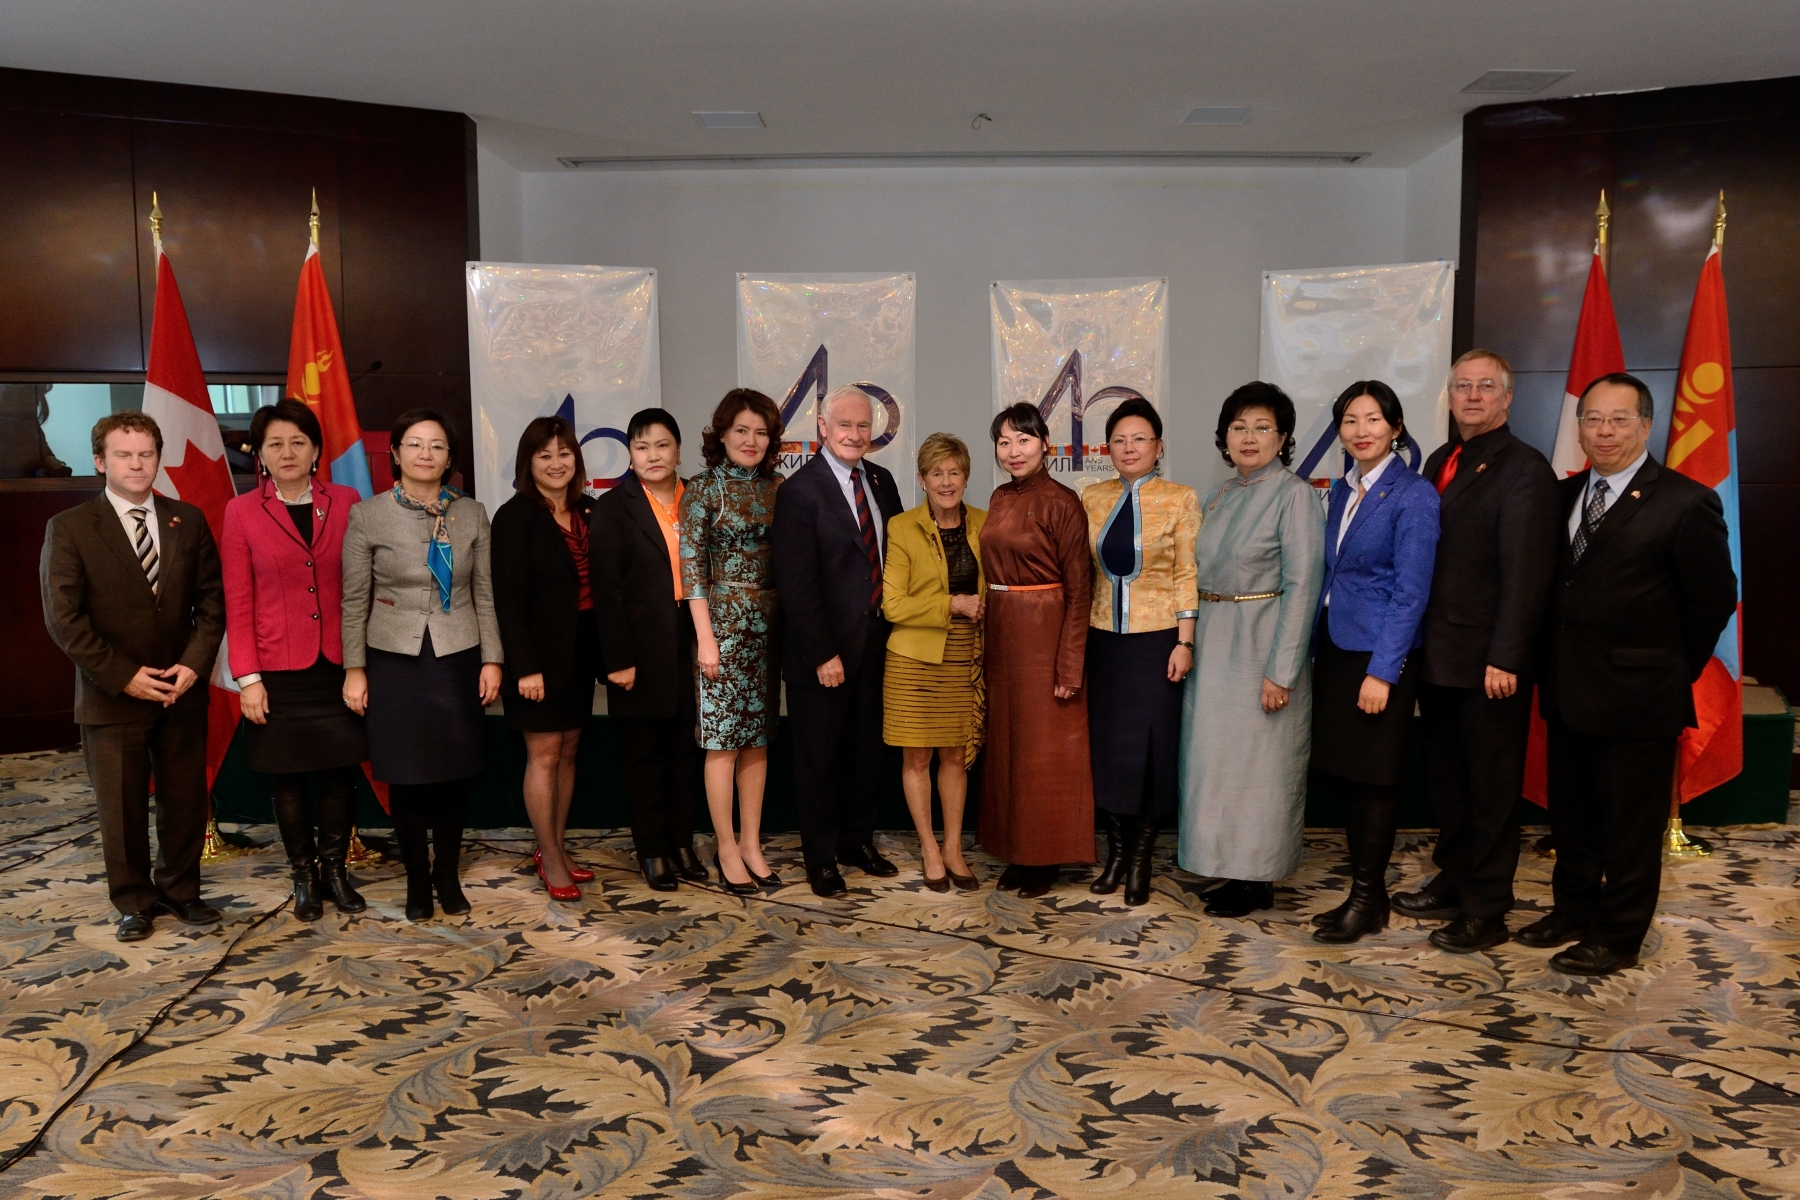 That afternoon, Their Excellencies and members of the accompanying delegation met with women parliamentarians who are taking on a stronger leadership role in Mongolia.